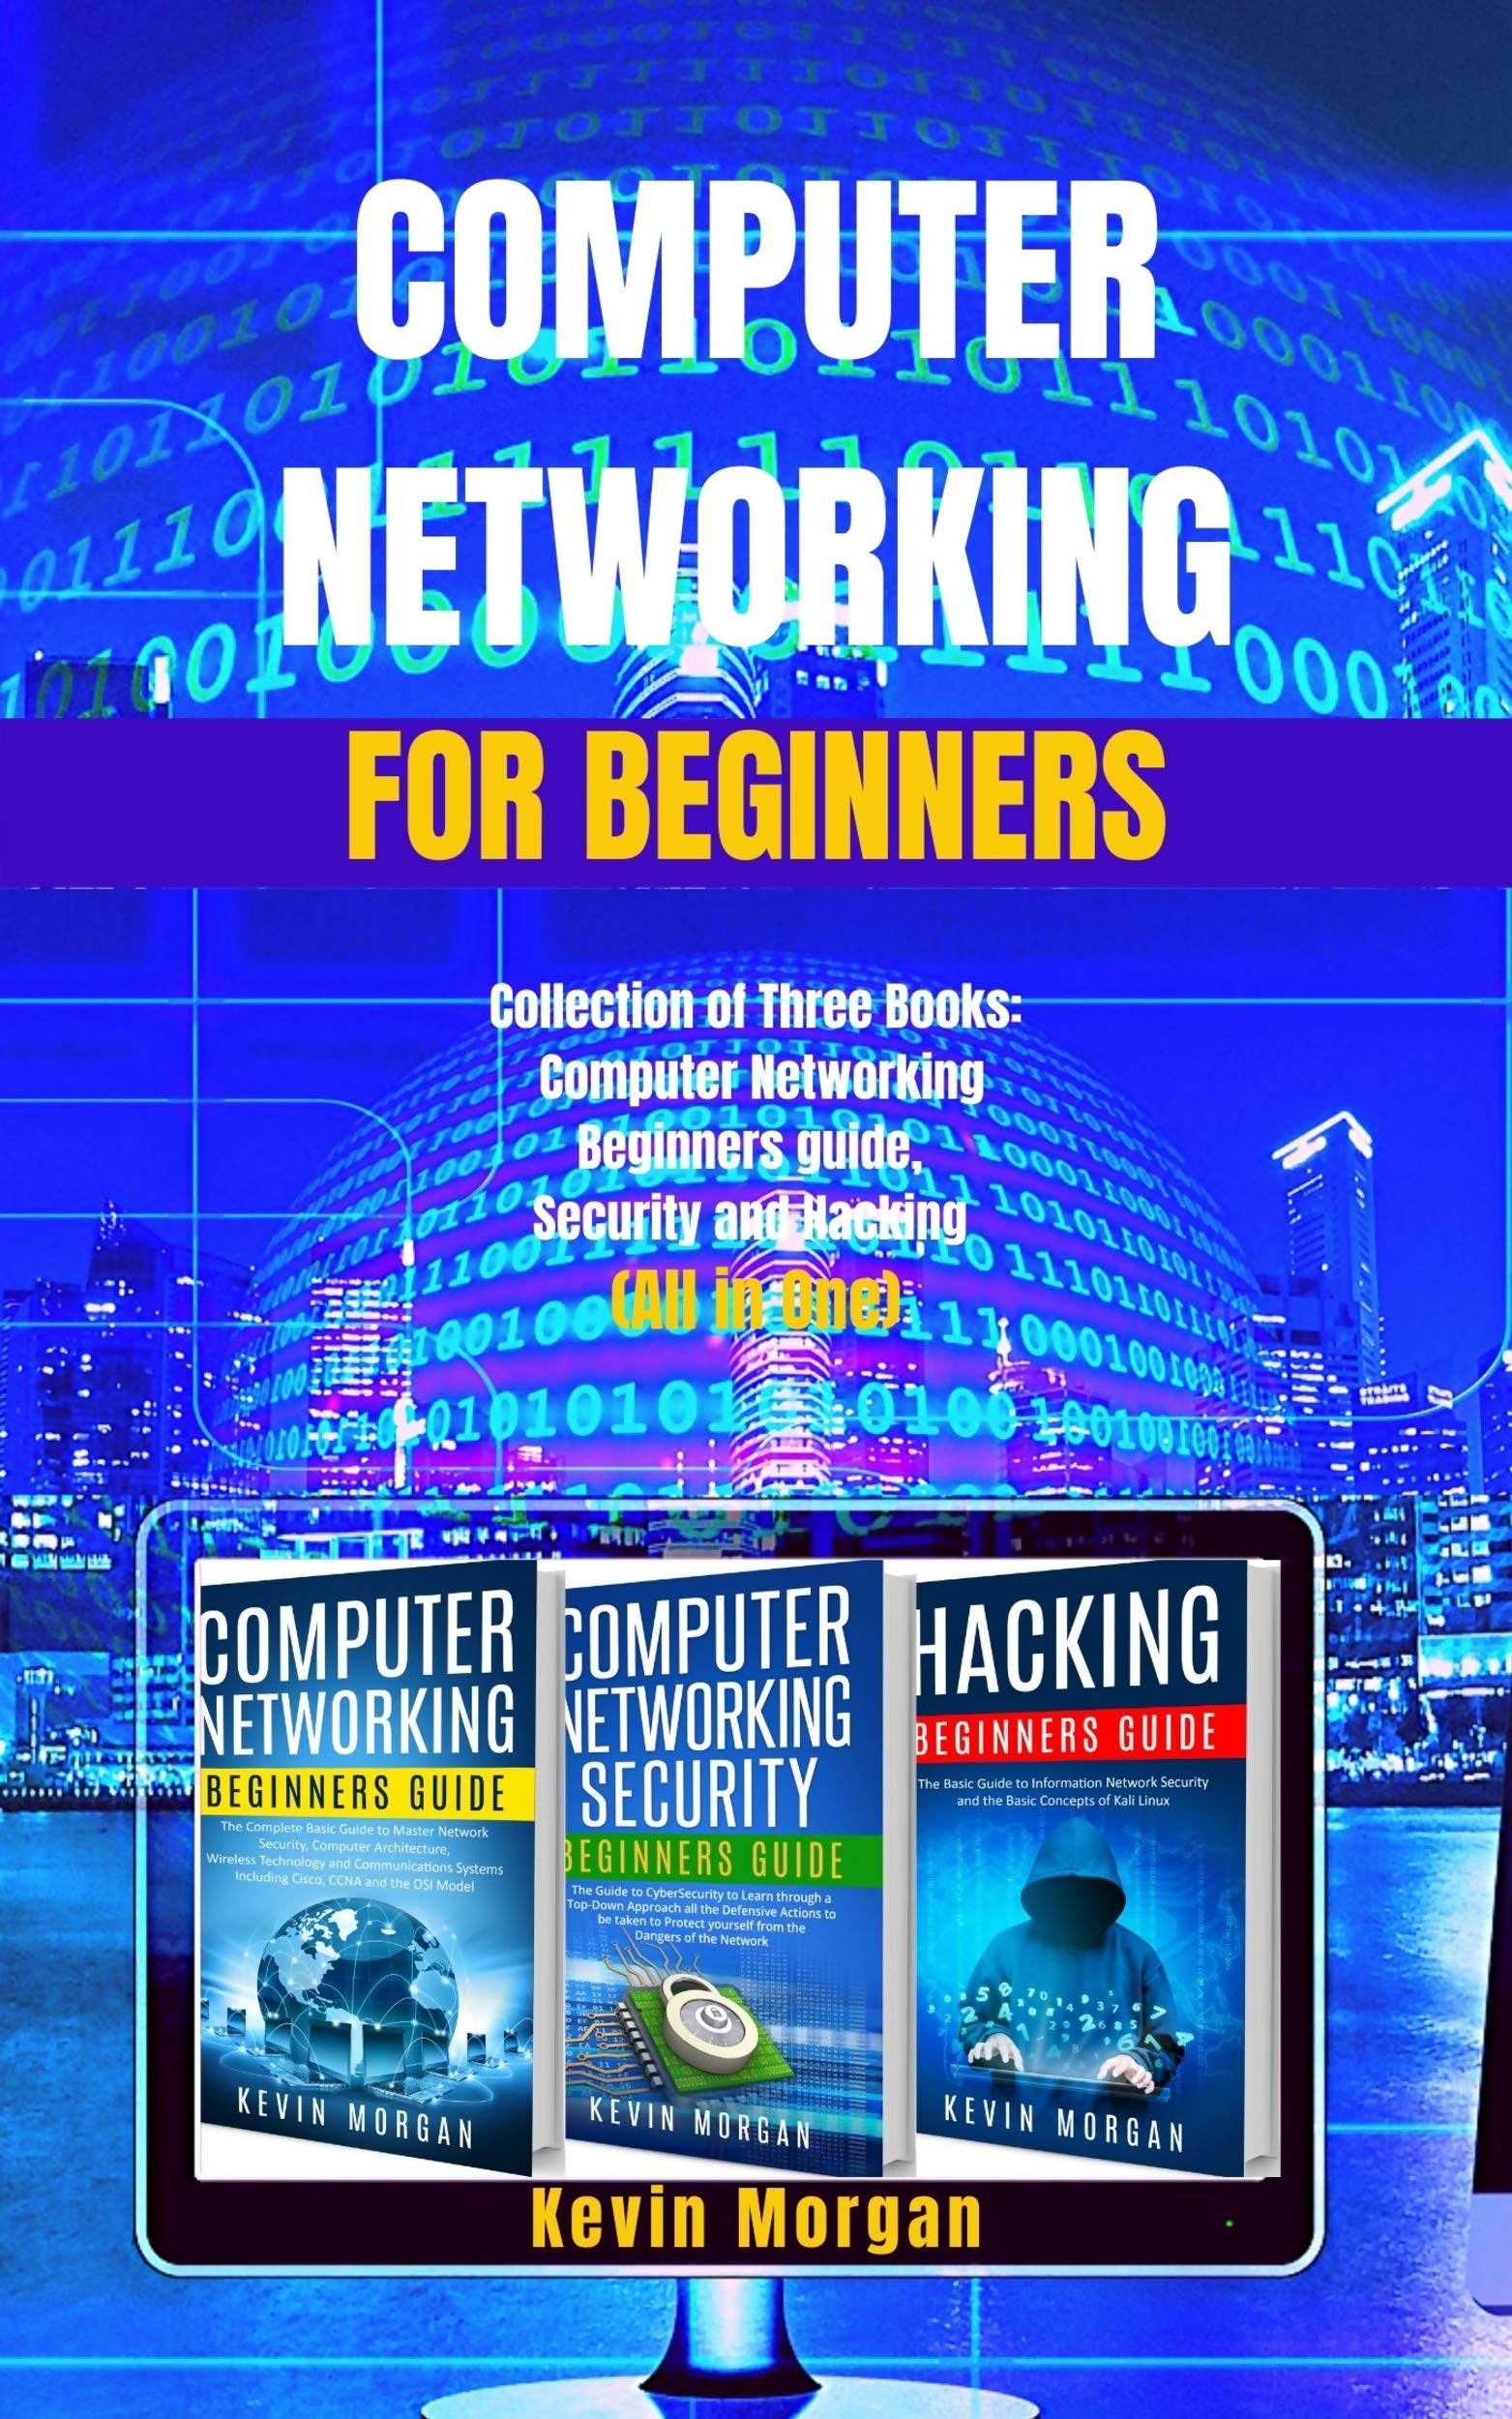 Computer Networking for Beginners: Collection of Three Books: Computer Networking Beginners Guide, Security and Hacking